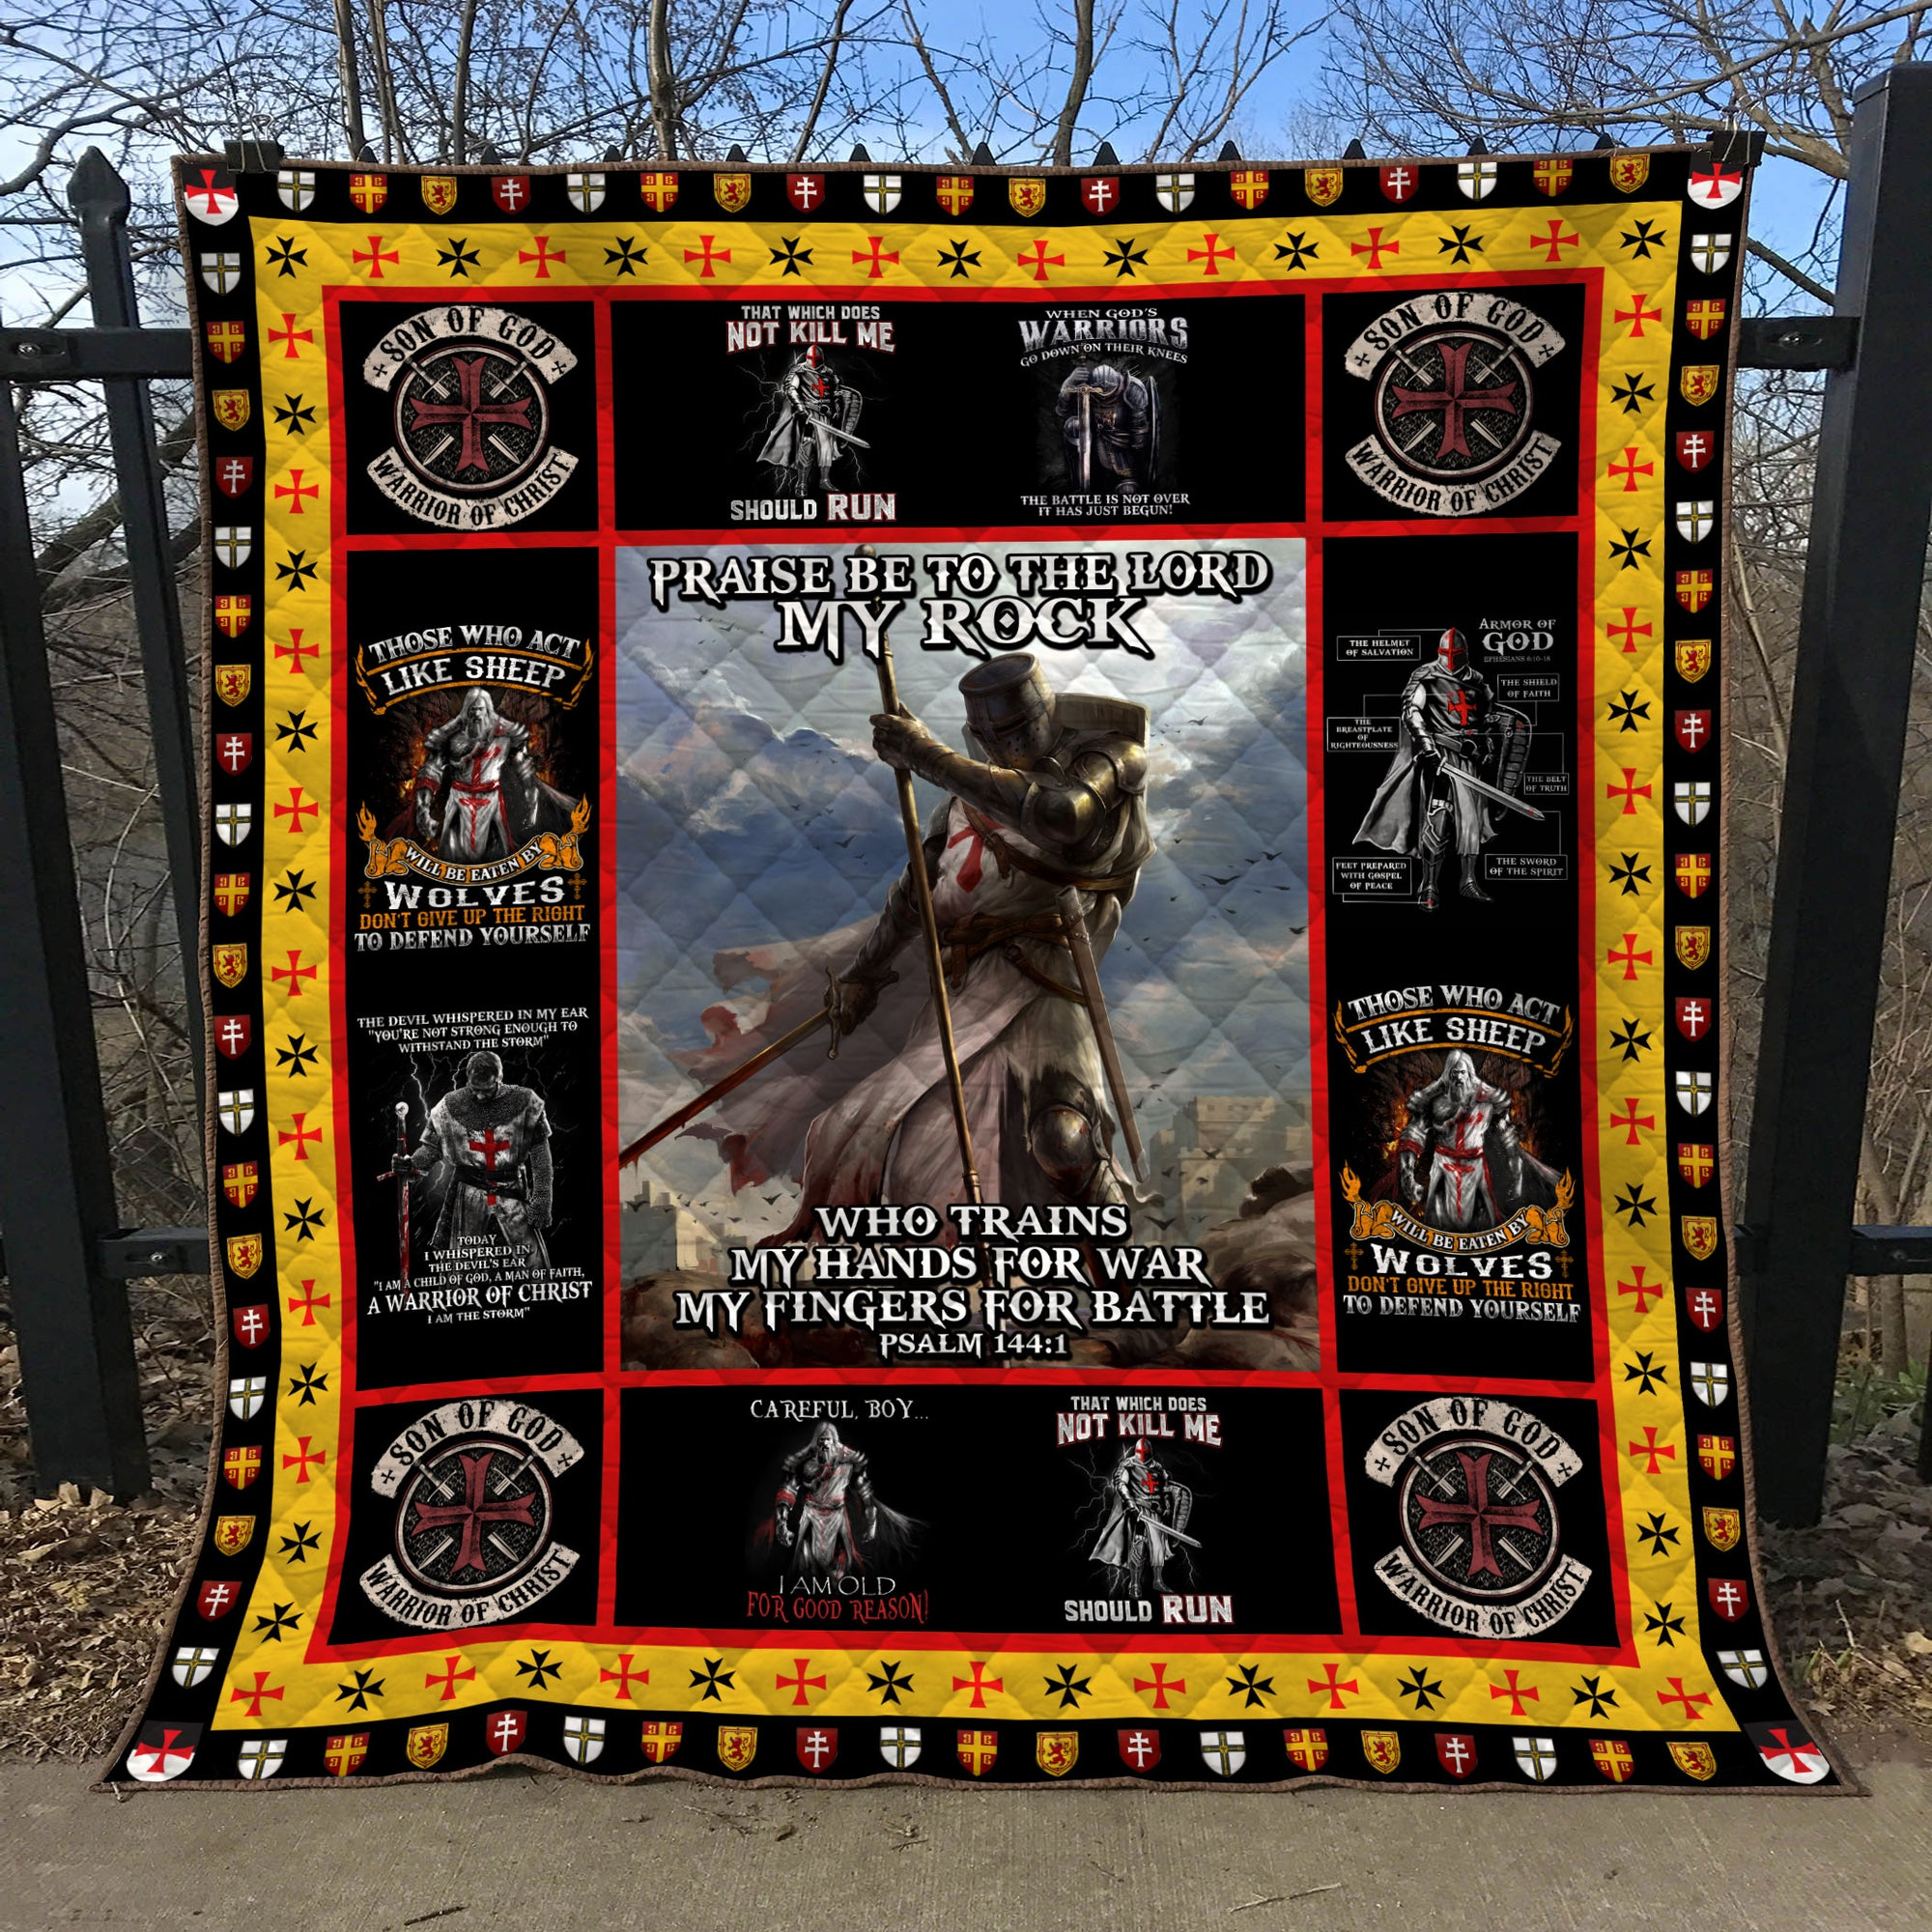 Trending Christian Quilt Collection - Prasing to the lord my rock ql-hg109 - GnWarriors Clothing